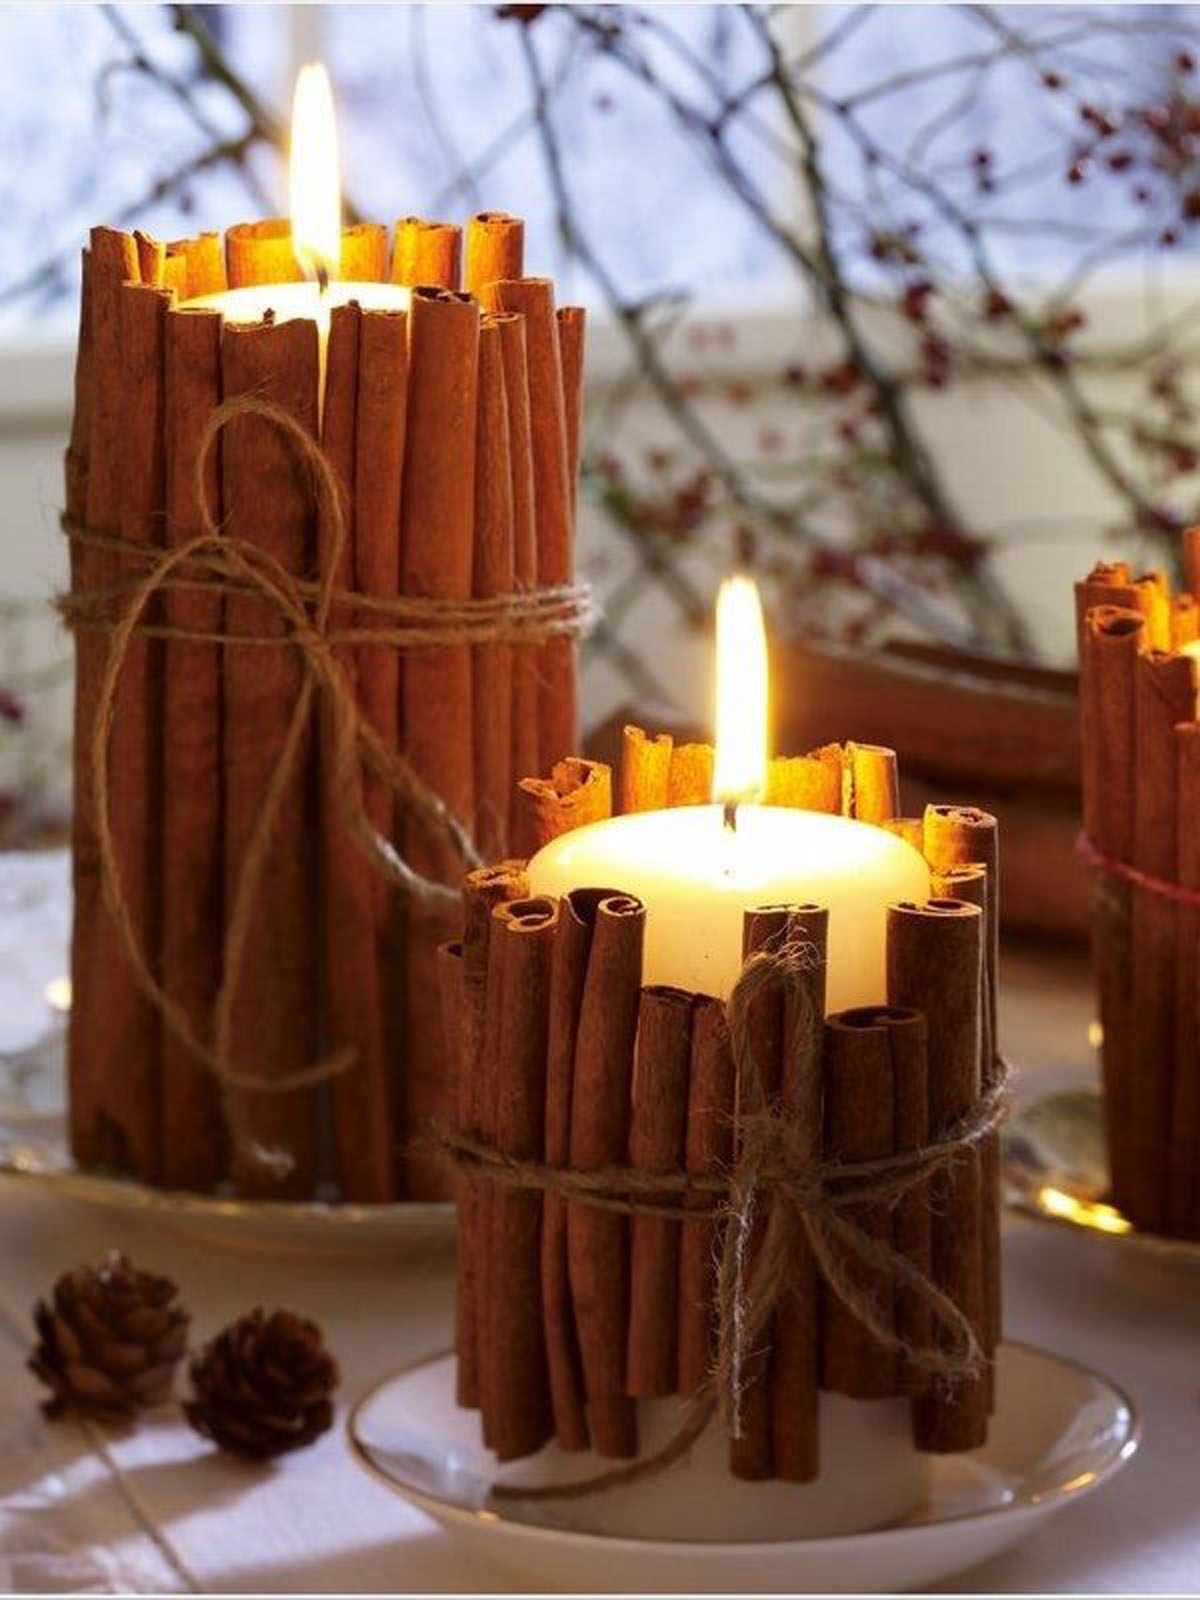 Cinnamon Stick Candles Make an Irresistible Table Piece